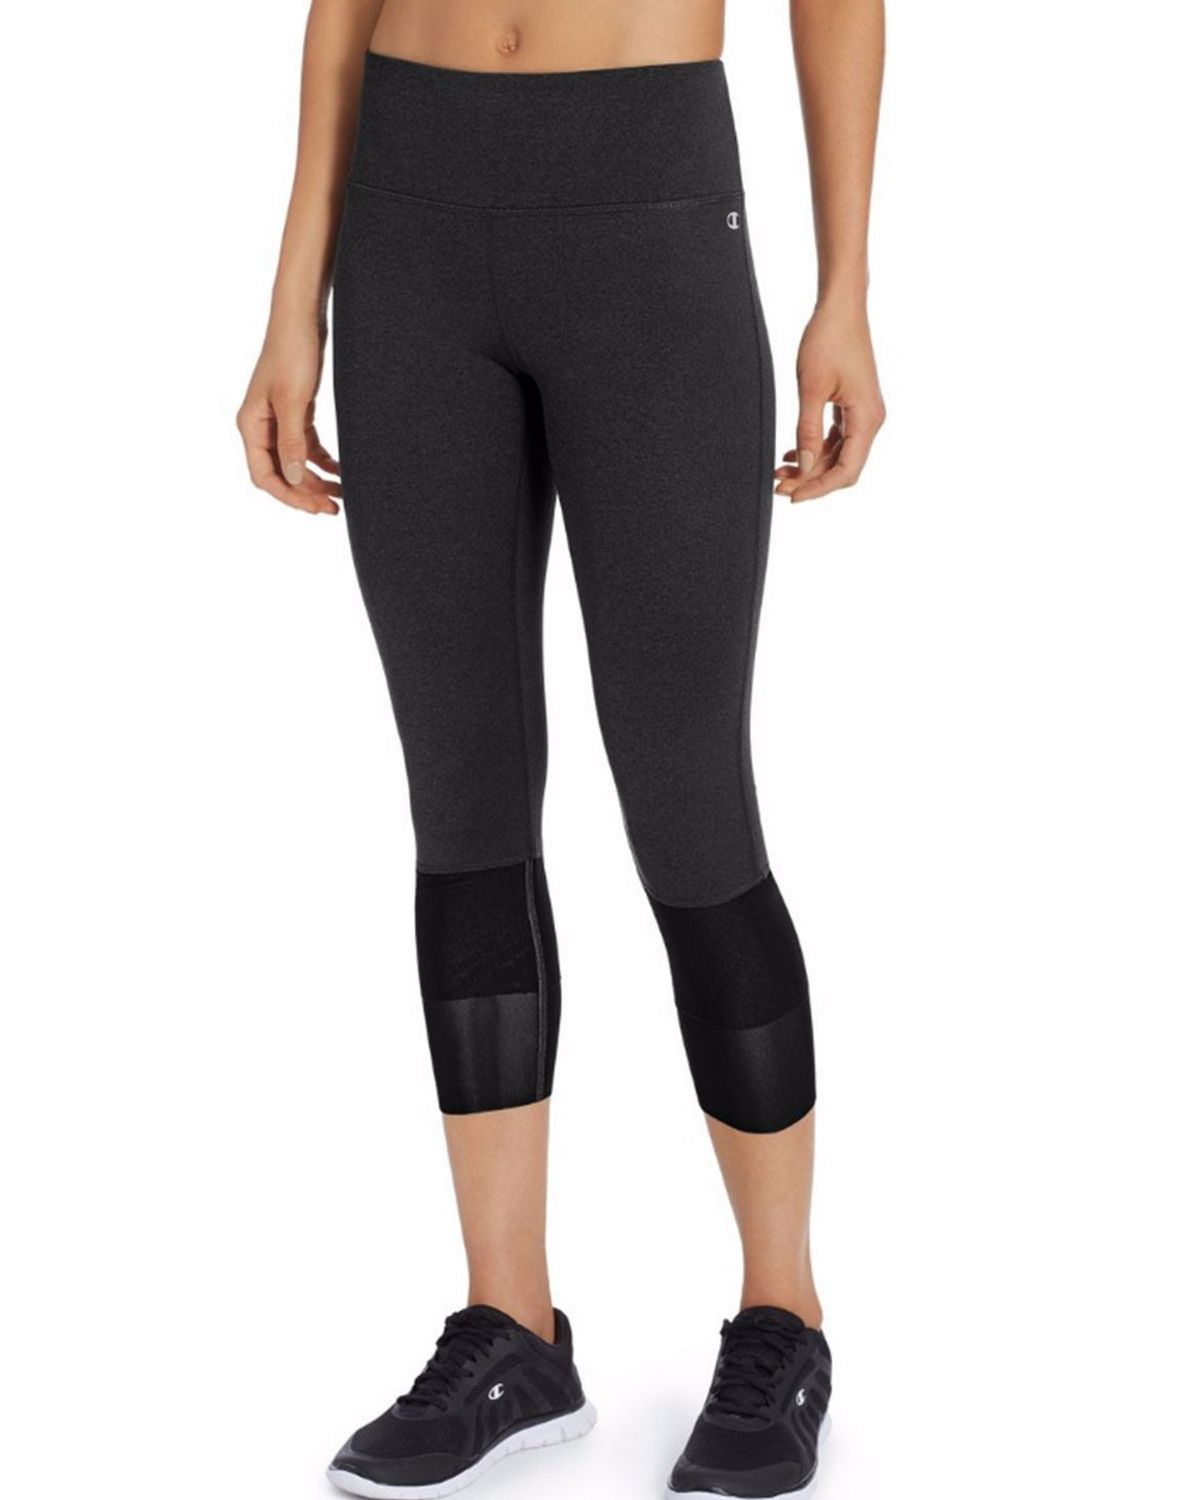 Champion M50075 Womens Mesh 3/4 Tights - Black - M M50075